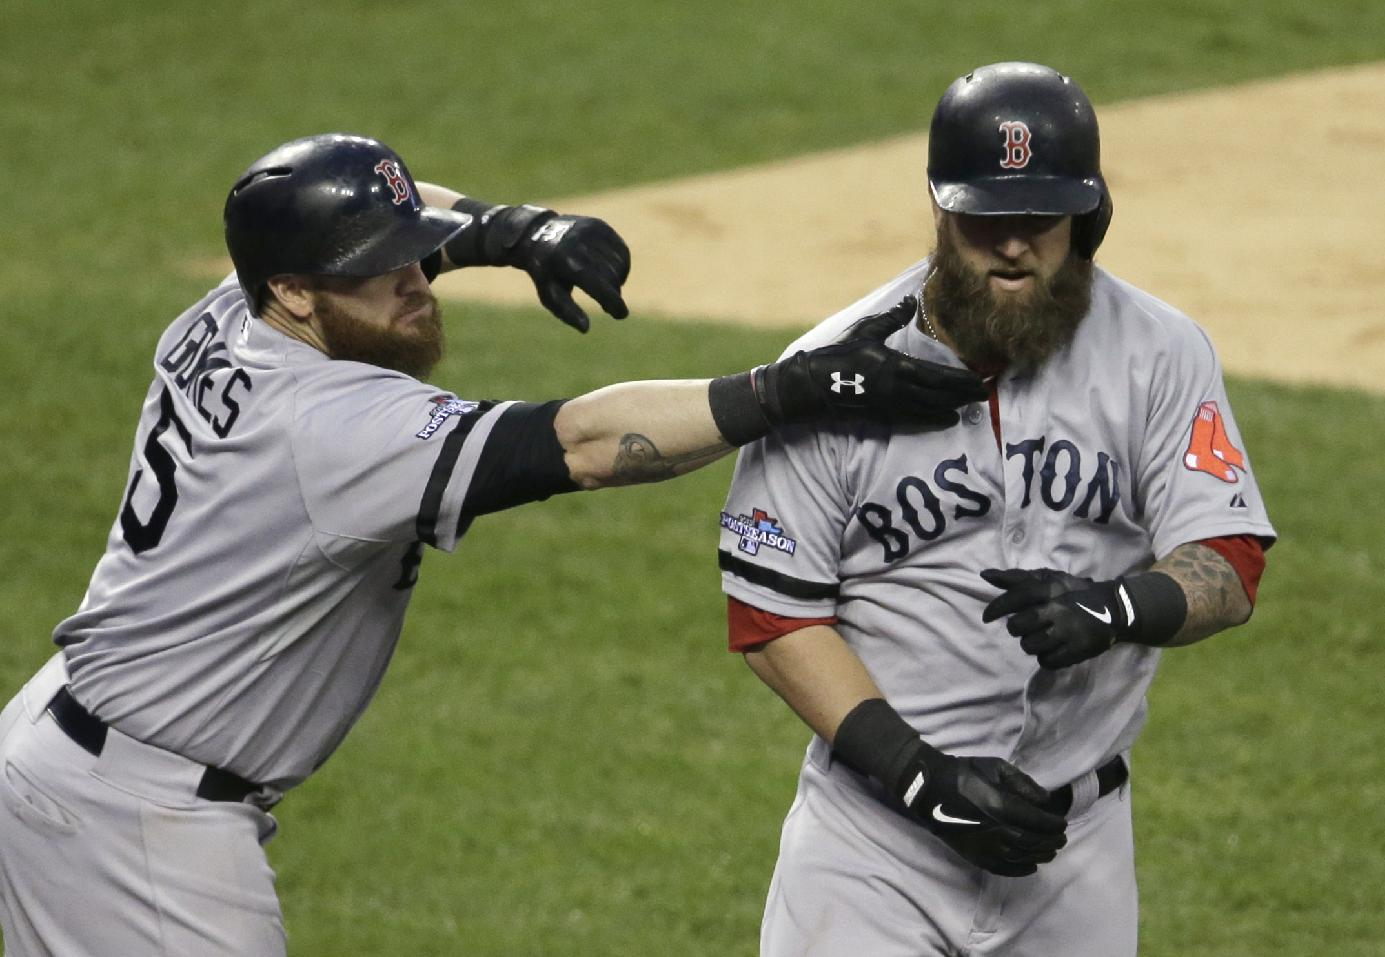 Boston holds off Tigers 1-0 behind Lackey, bullpen